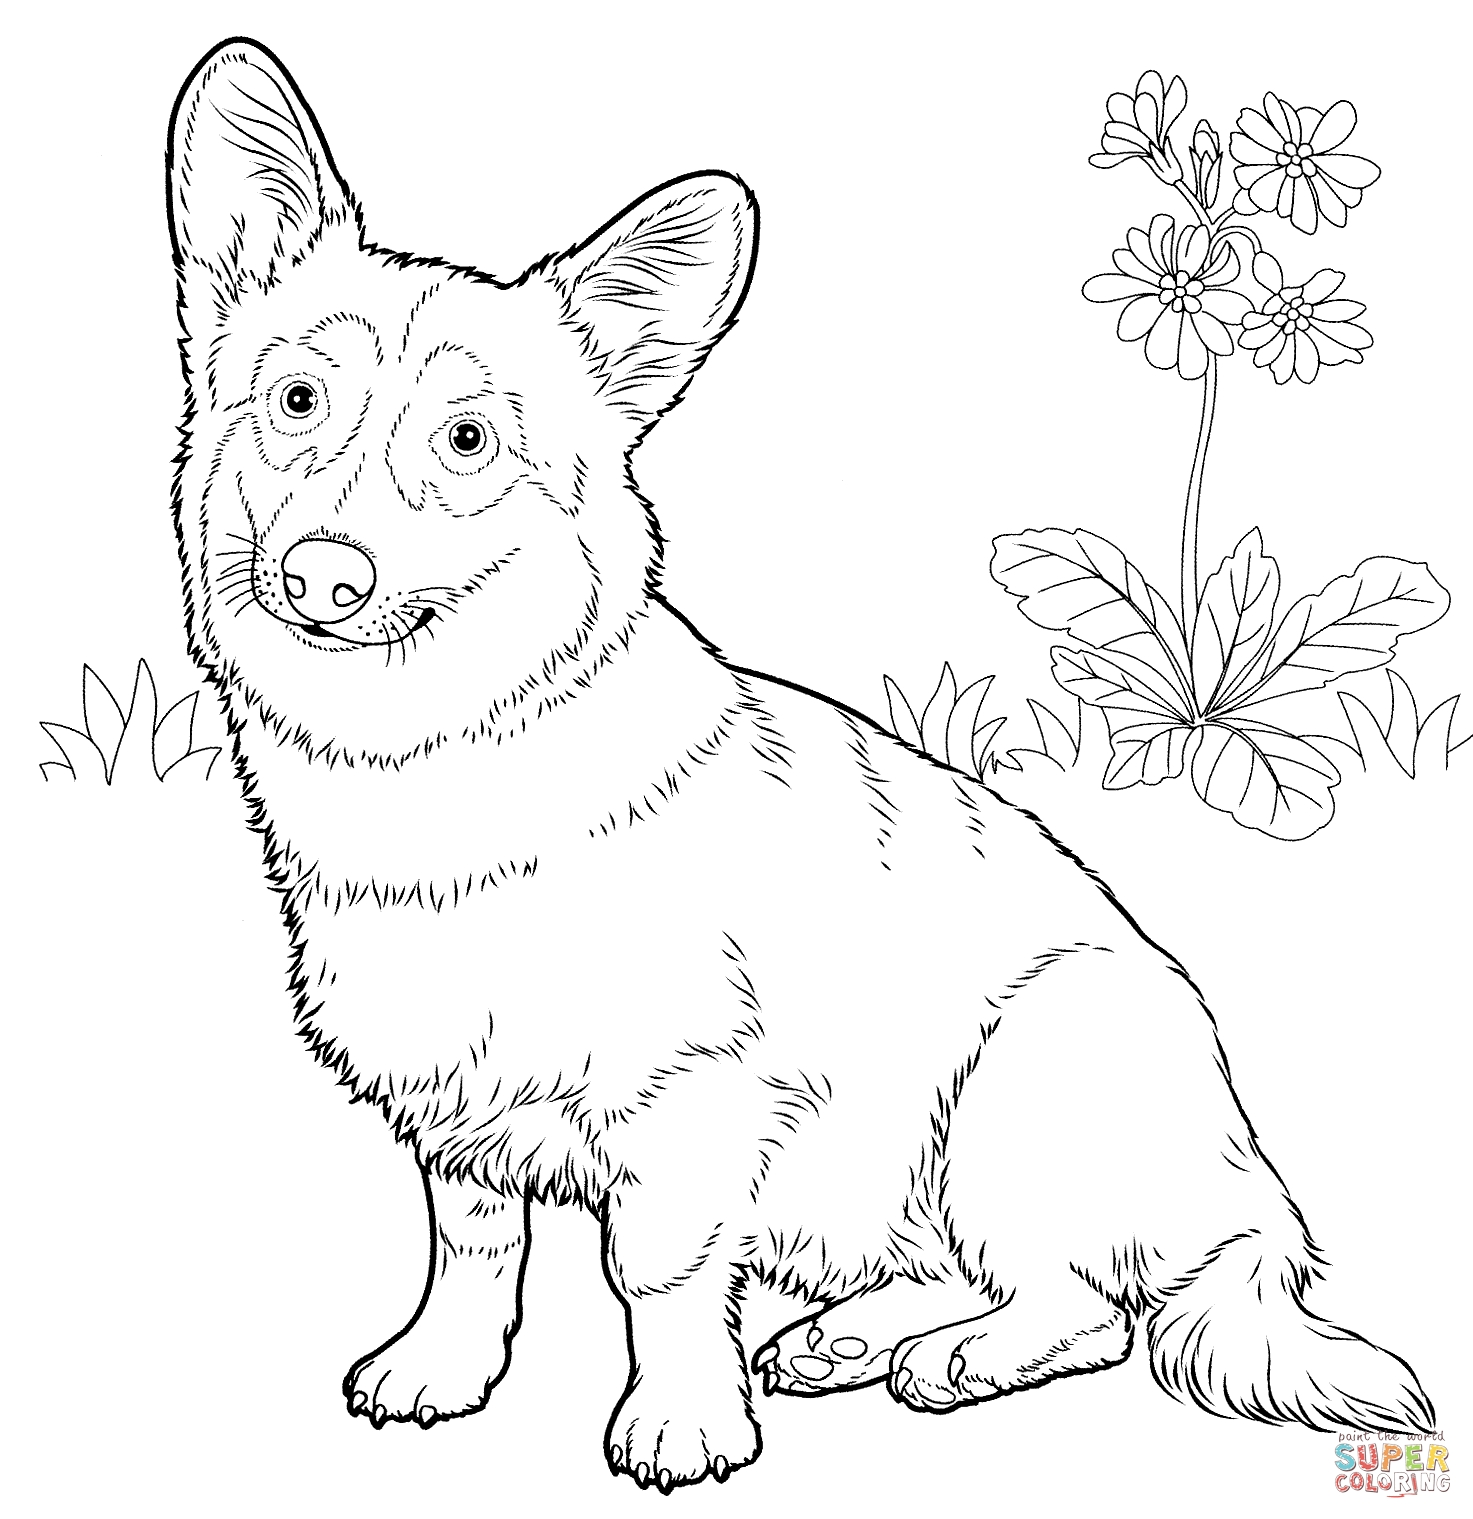 corgi coloring pages - pembroke welsh corgi